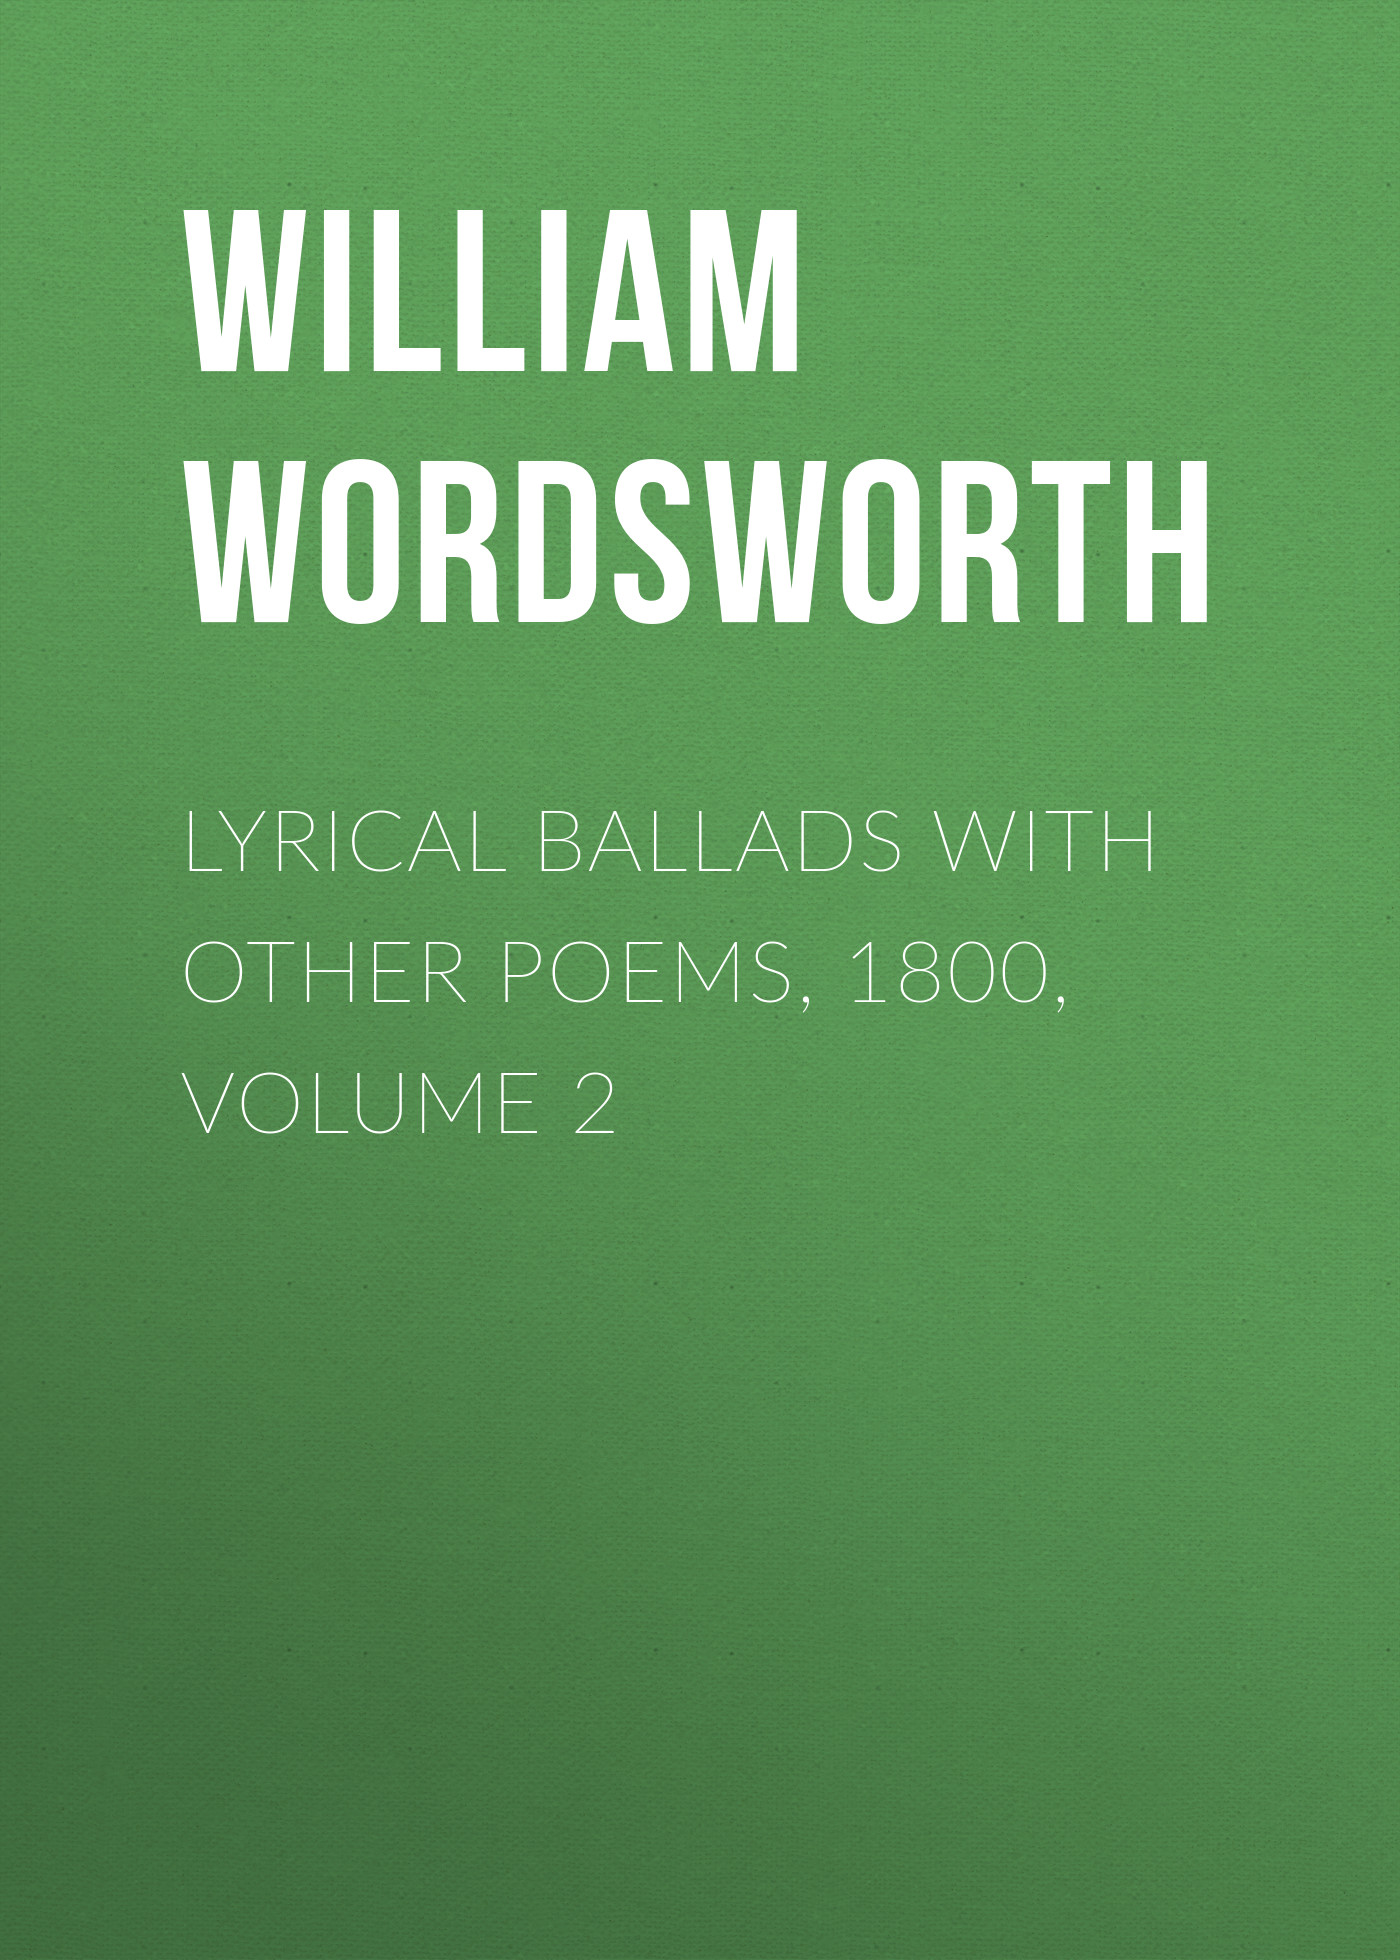 купить William Wordsworth Lyrical Ballads with Other Poems, 1800, Volume 2